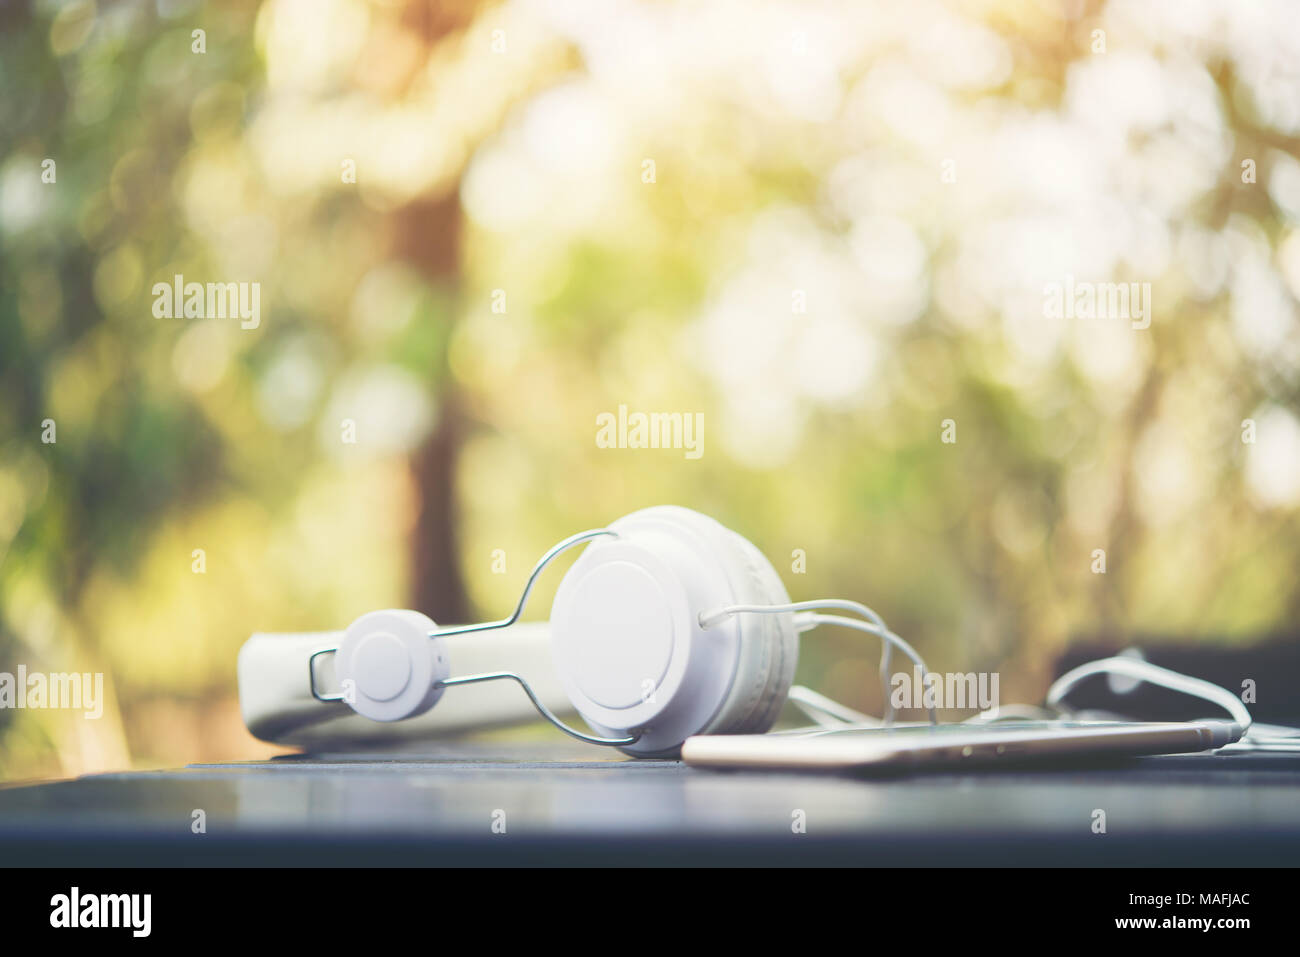 Mobile Phone With Headphone On Wooden Table With Nature Background Vintage Filter Stock Photo Alamy